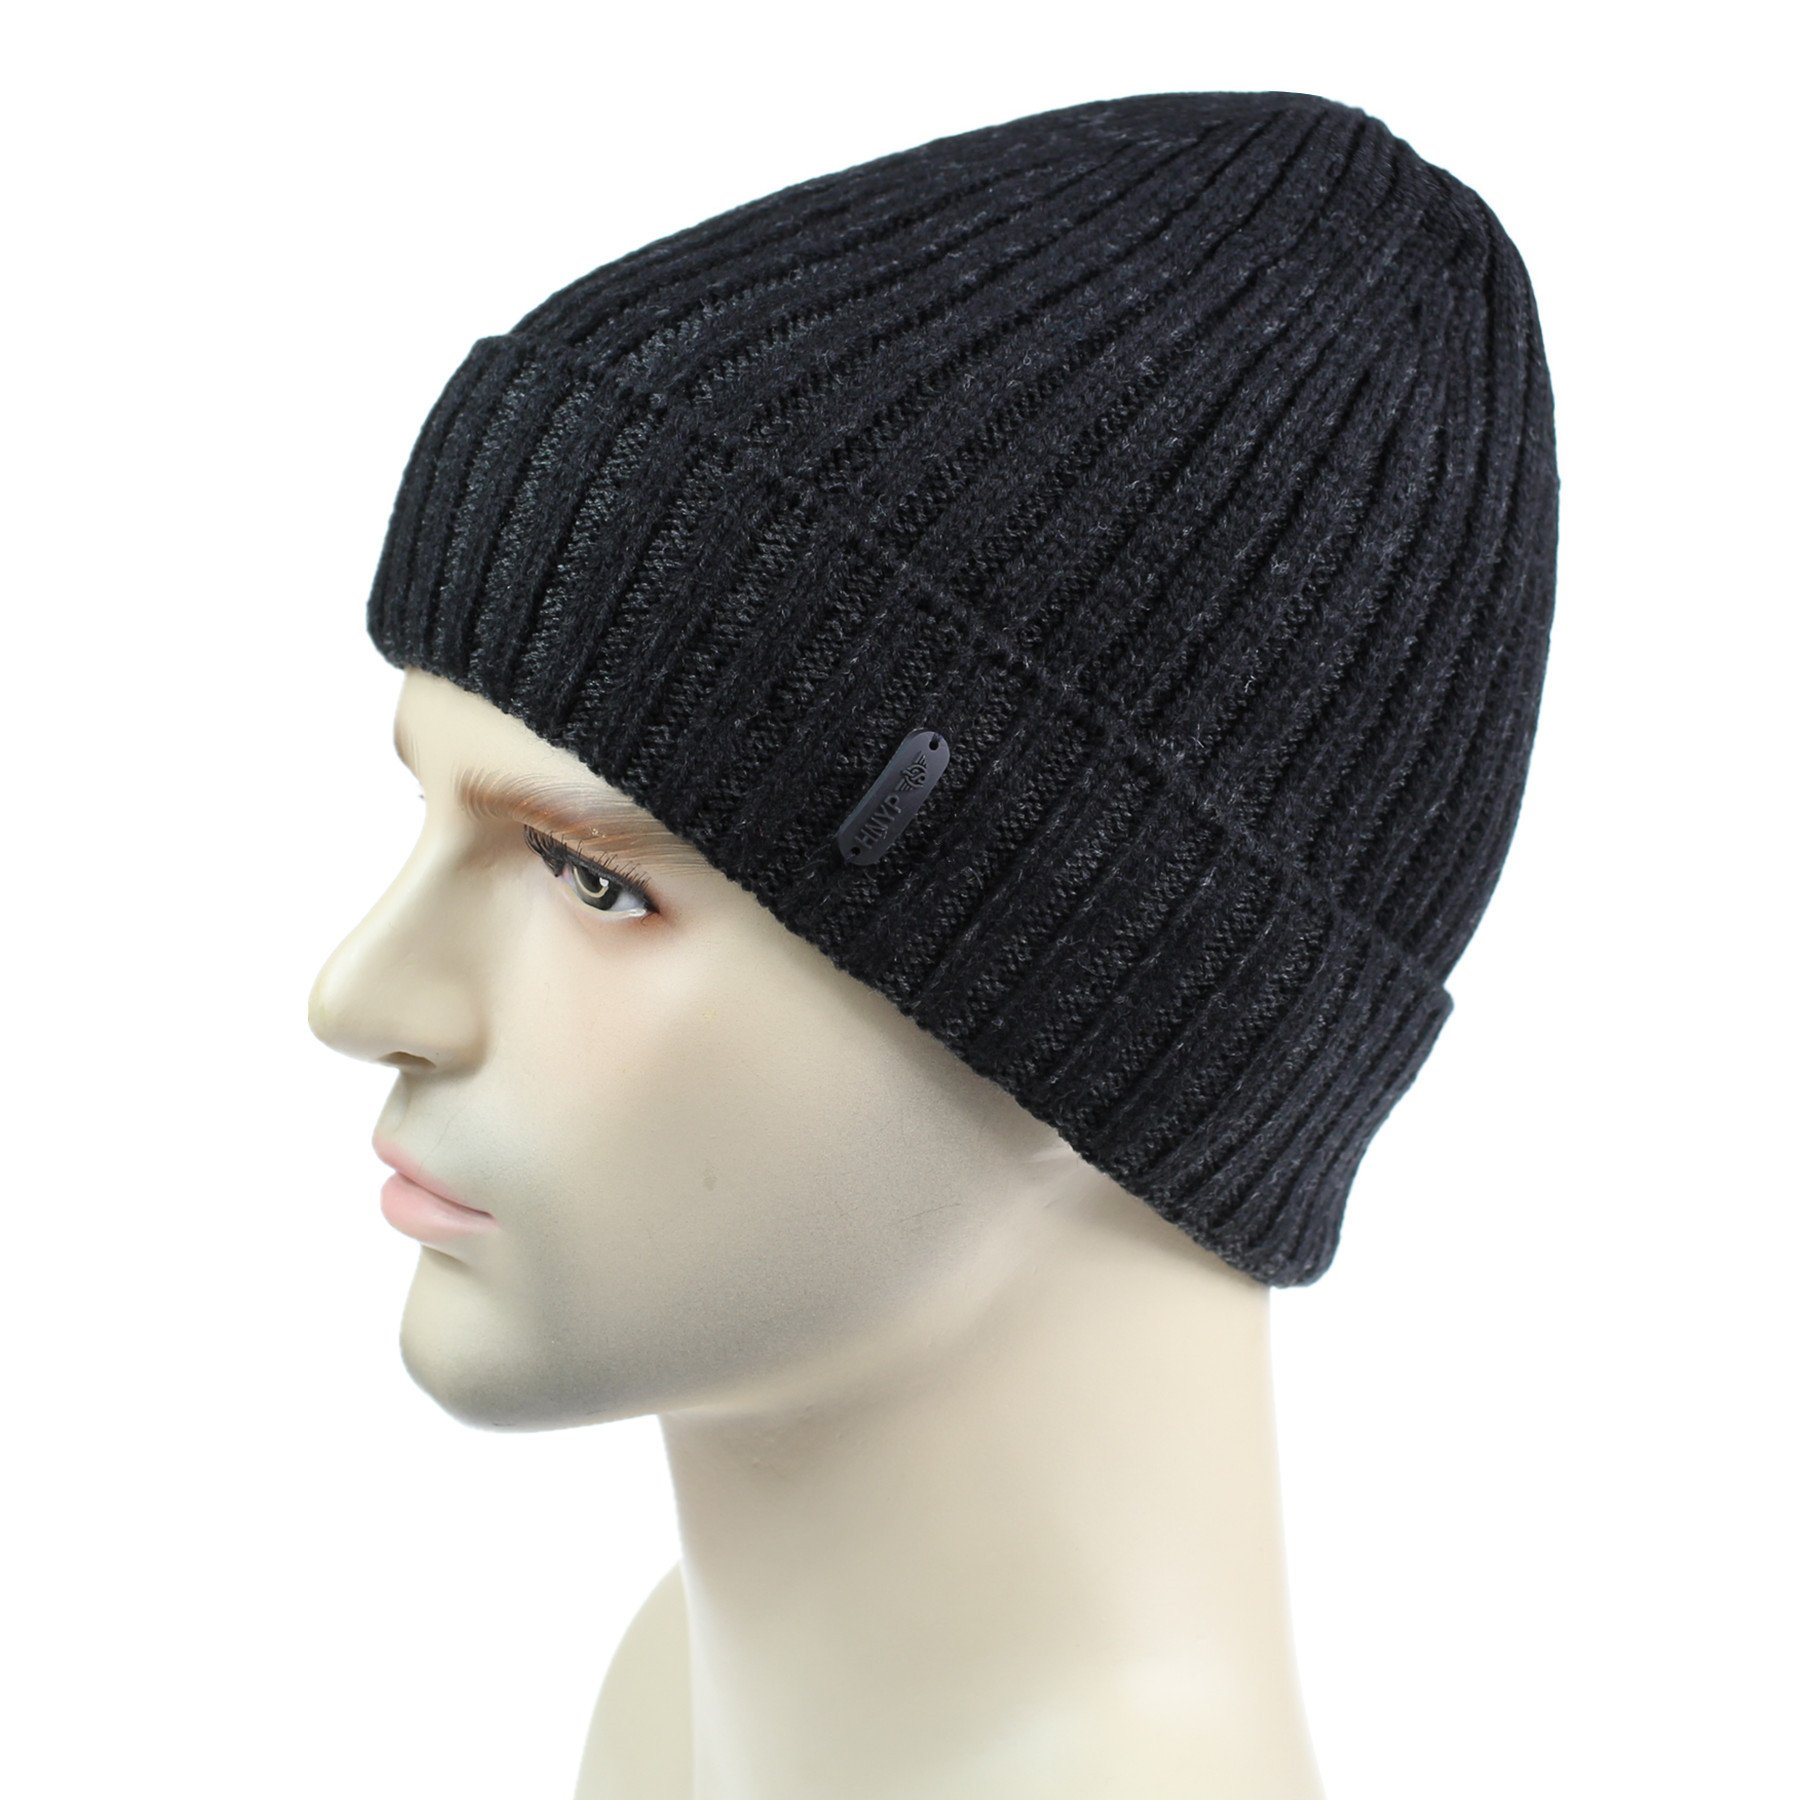 dbca84c6fa9 Connectyle Classic Men s Warm Winter Hats Thick Knit Cuff Beanie Cap with  Lining